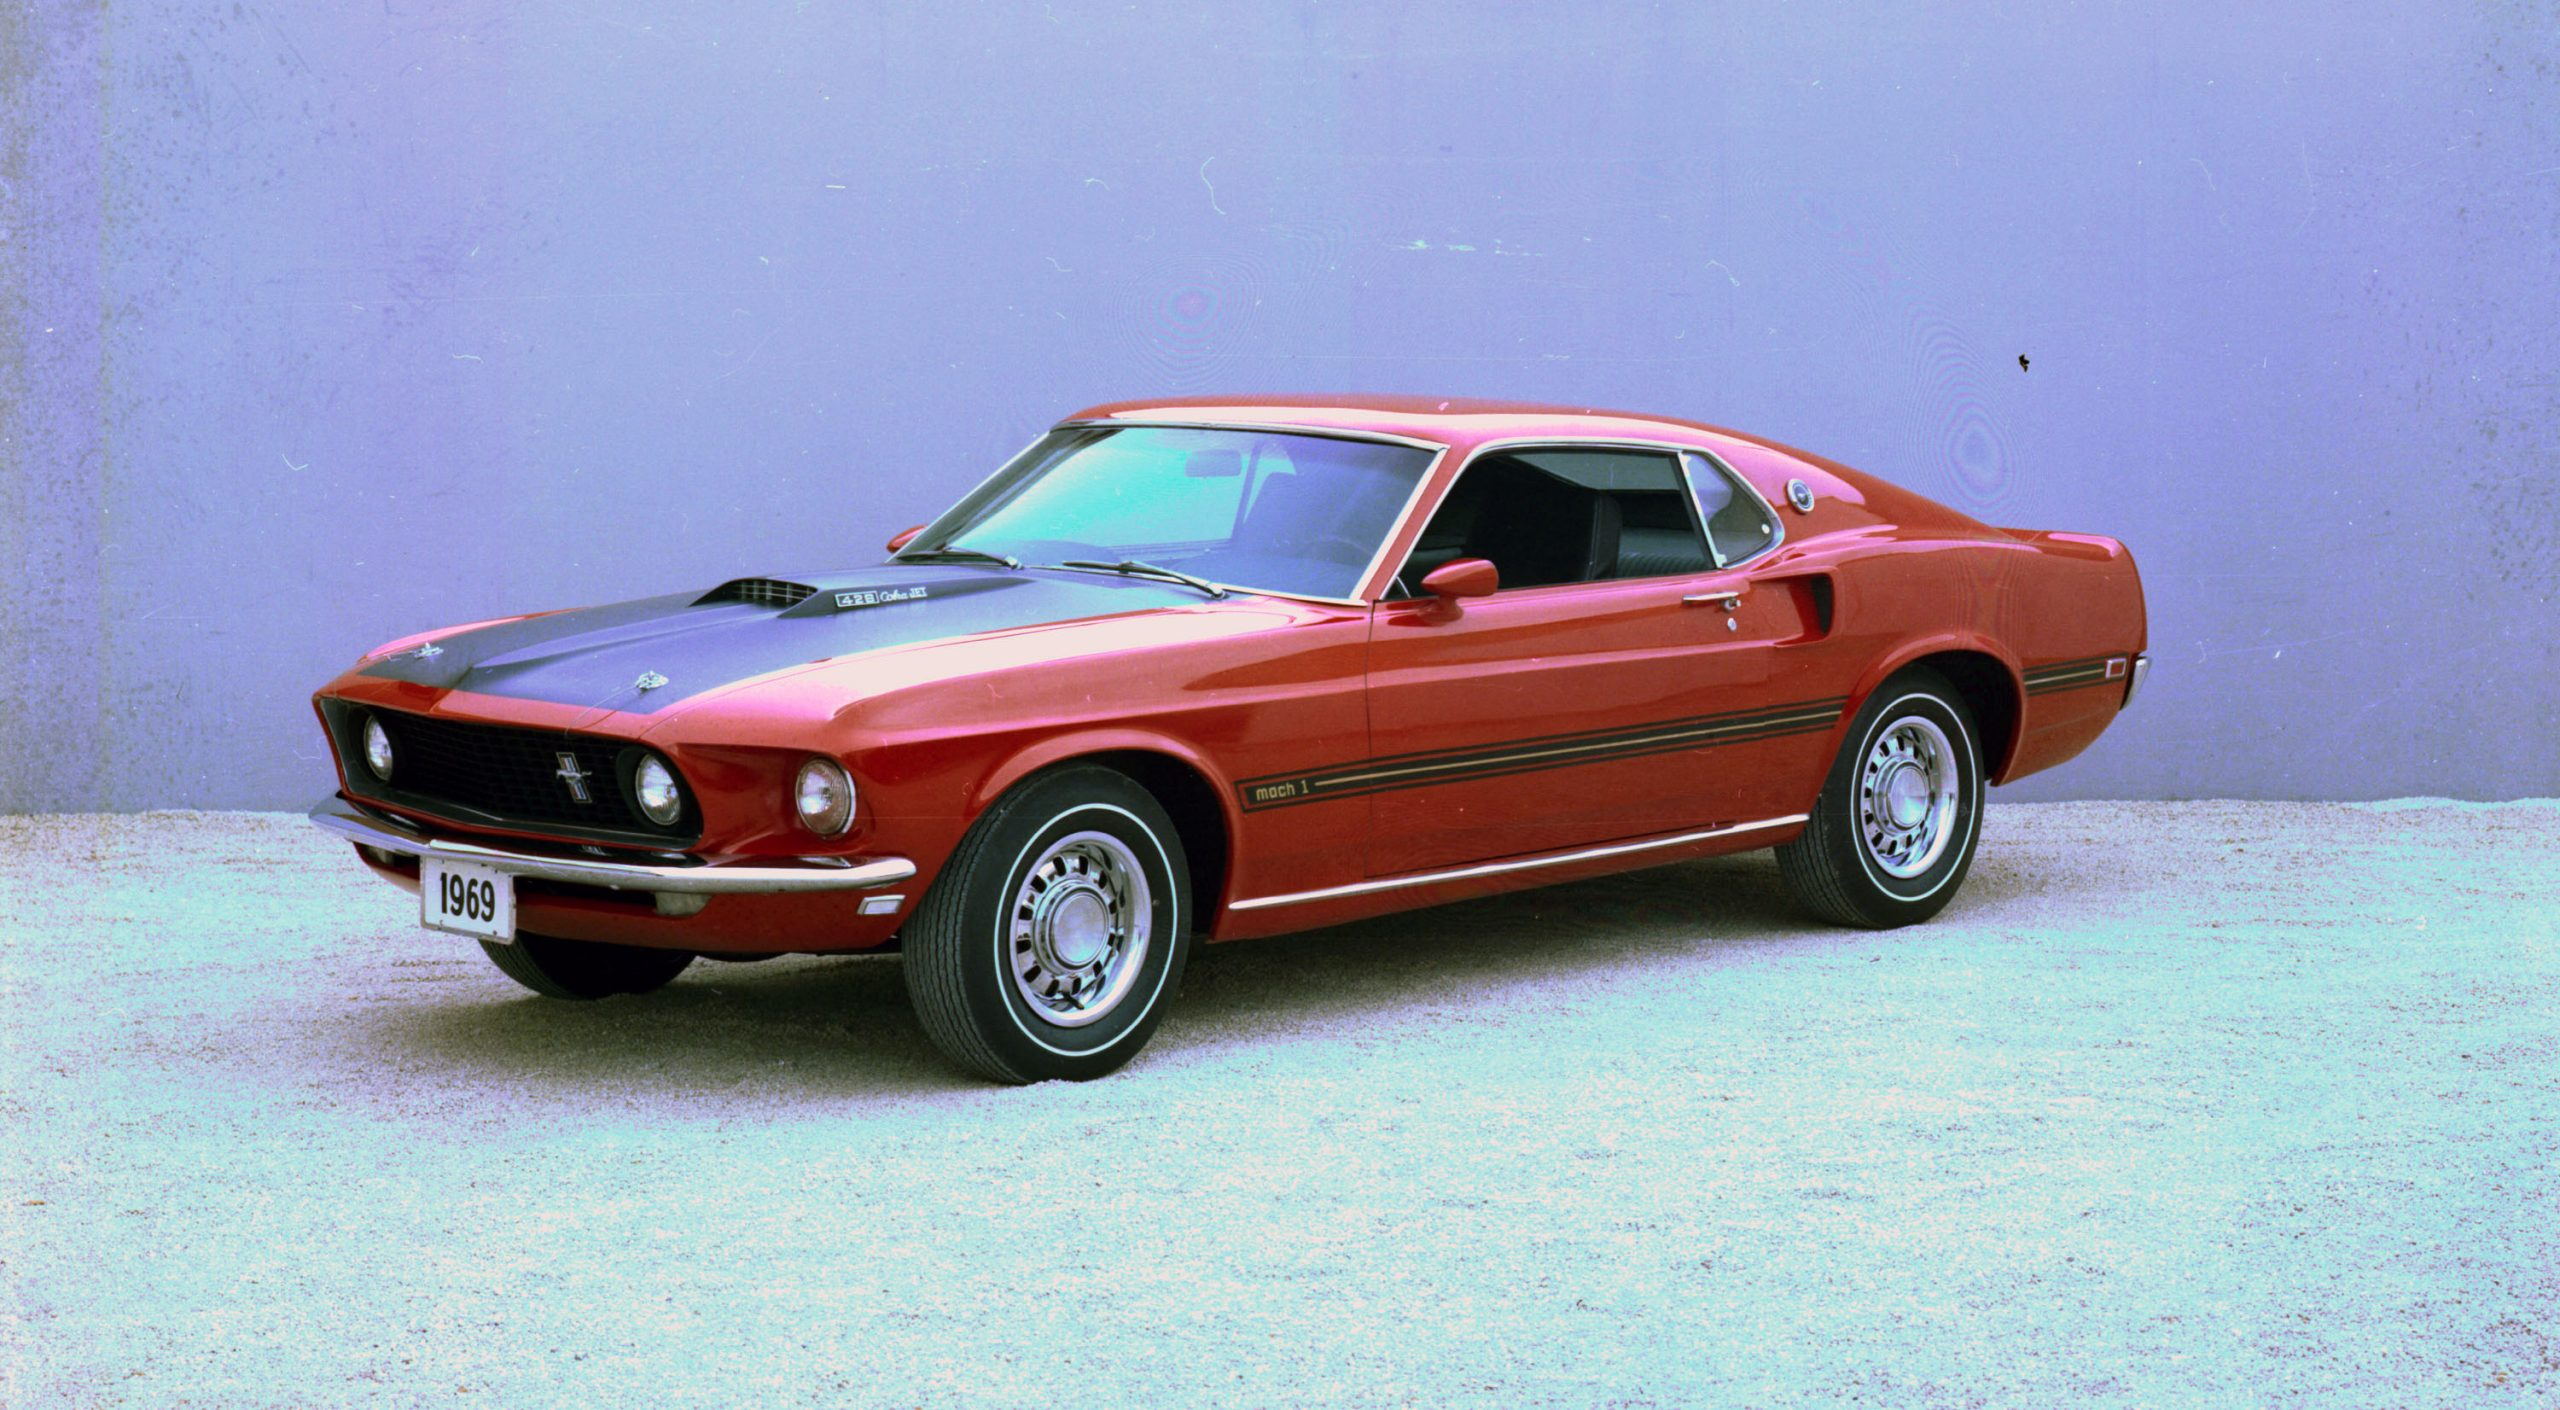 1969 Ford Mustang Mach I 428 Cobra Jet Front Three-Quarter